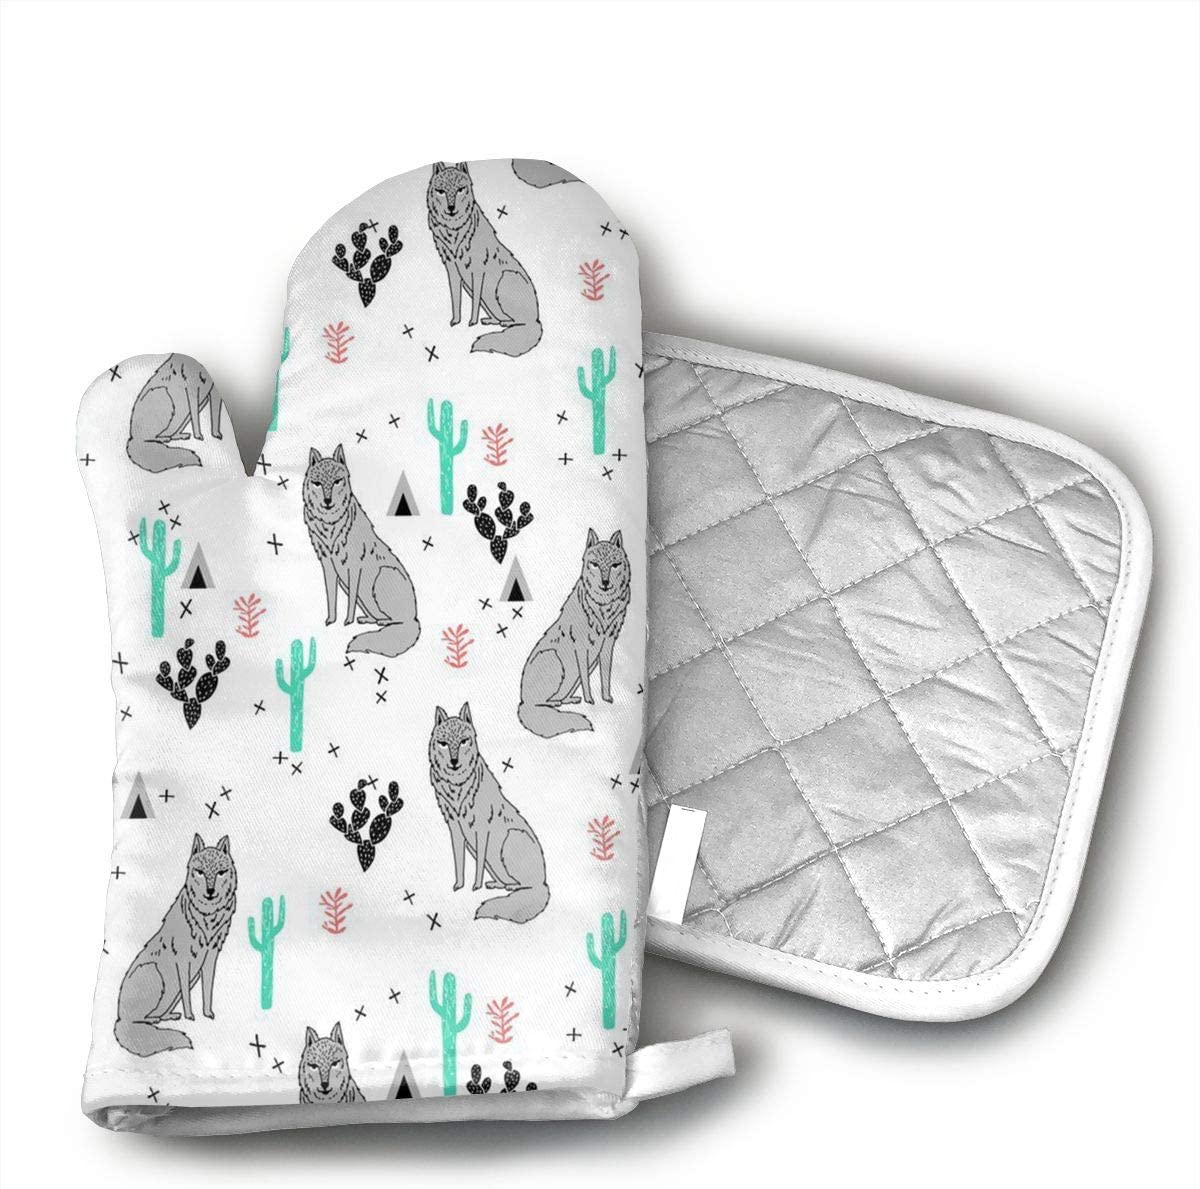 Ubnz17X Wolf Cactus Oven Mitts and Pot Holders for Kitchen Set with Cotton Non-Slip Grip,Heat Resistant